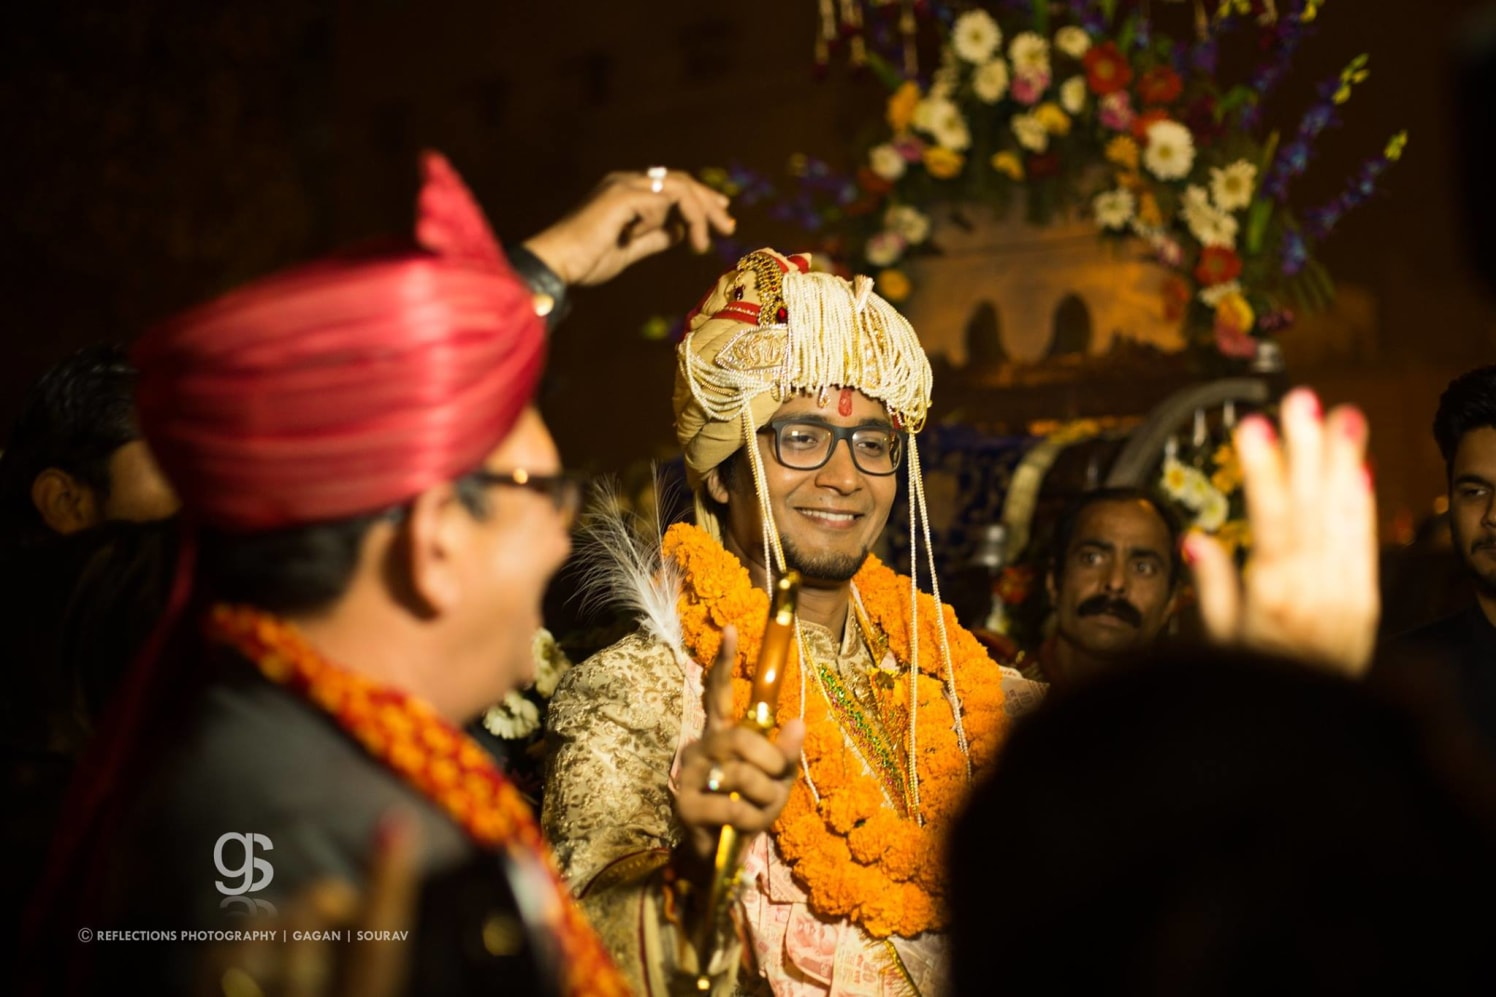 Sway with the groom! by Reflections Photography Wedding-photography | Weddings Photos & Ideas